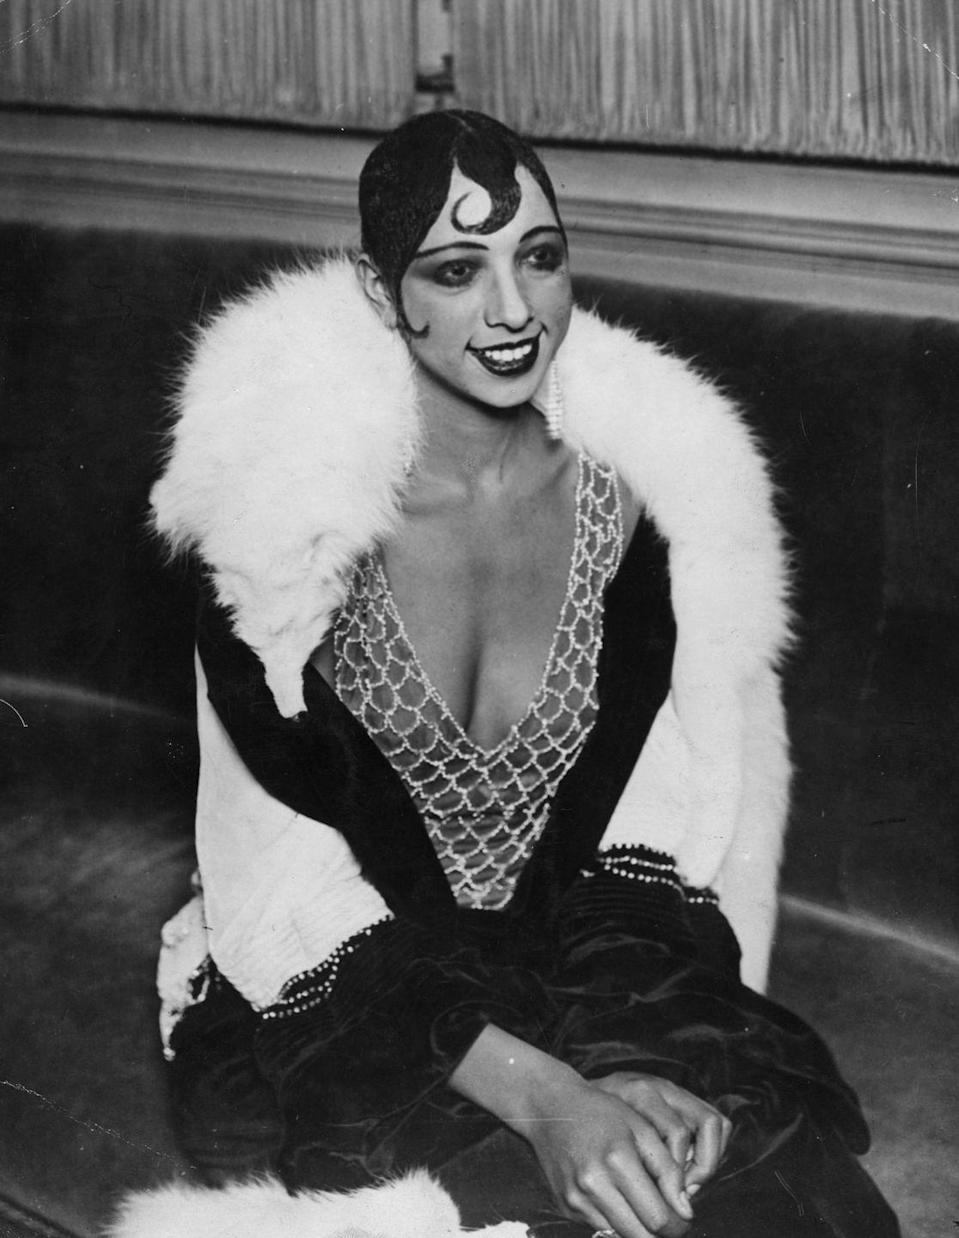 """<p>Although she found success in Europe, Baker returned to the United States in 1936 to make a name for herself in her home country. She headlined with the <a href=""""https://www.biography.com/performer/josephine-baker"""" rel=""""nofollow noopener"""" target=""""_blank"""" data-ylk=""""slk:Ziegfield Follies"""" class=""""link rapid-noclick-resp"""">Ziegfield Follies</a>, but was met with hostility and racism by audiences, and returned to France after the tour.</p>"""